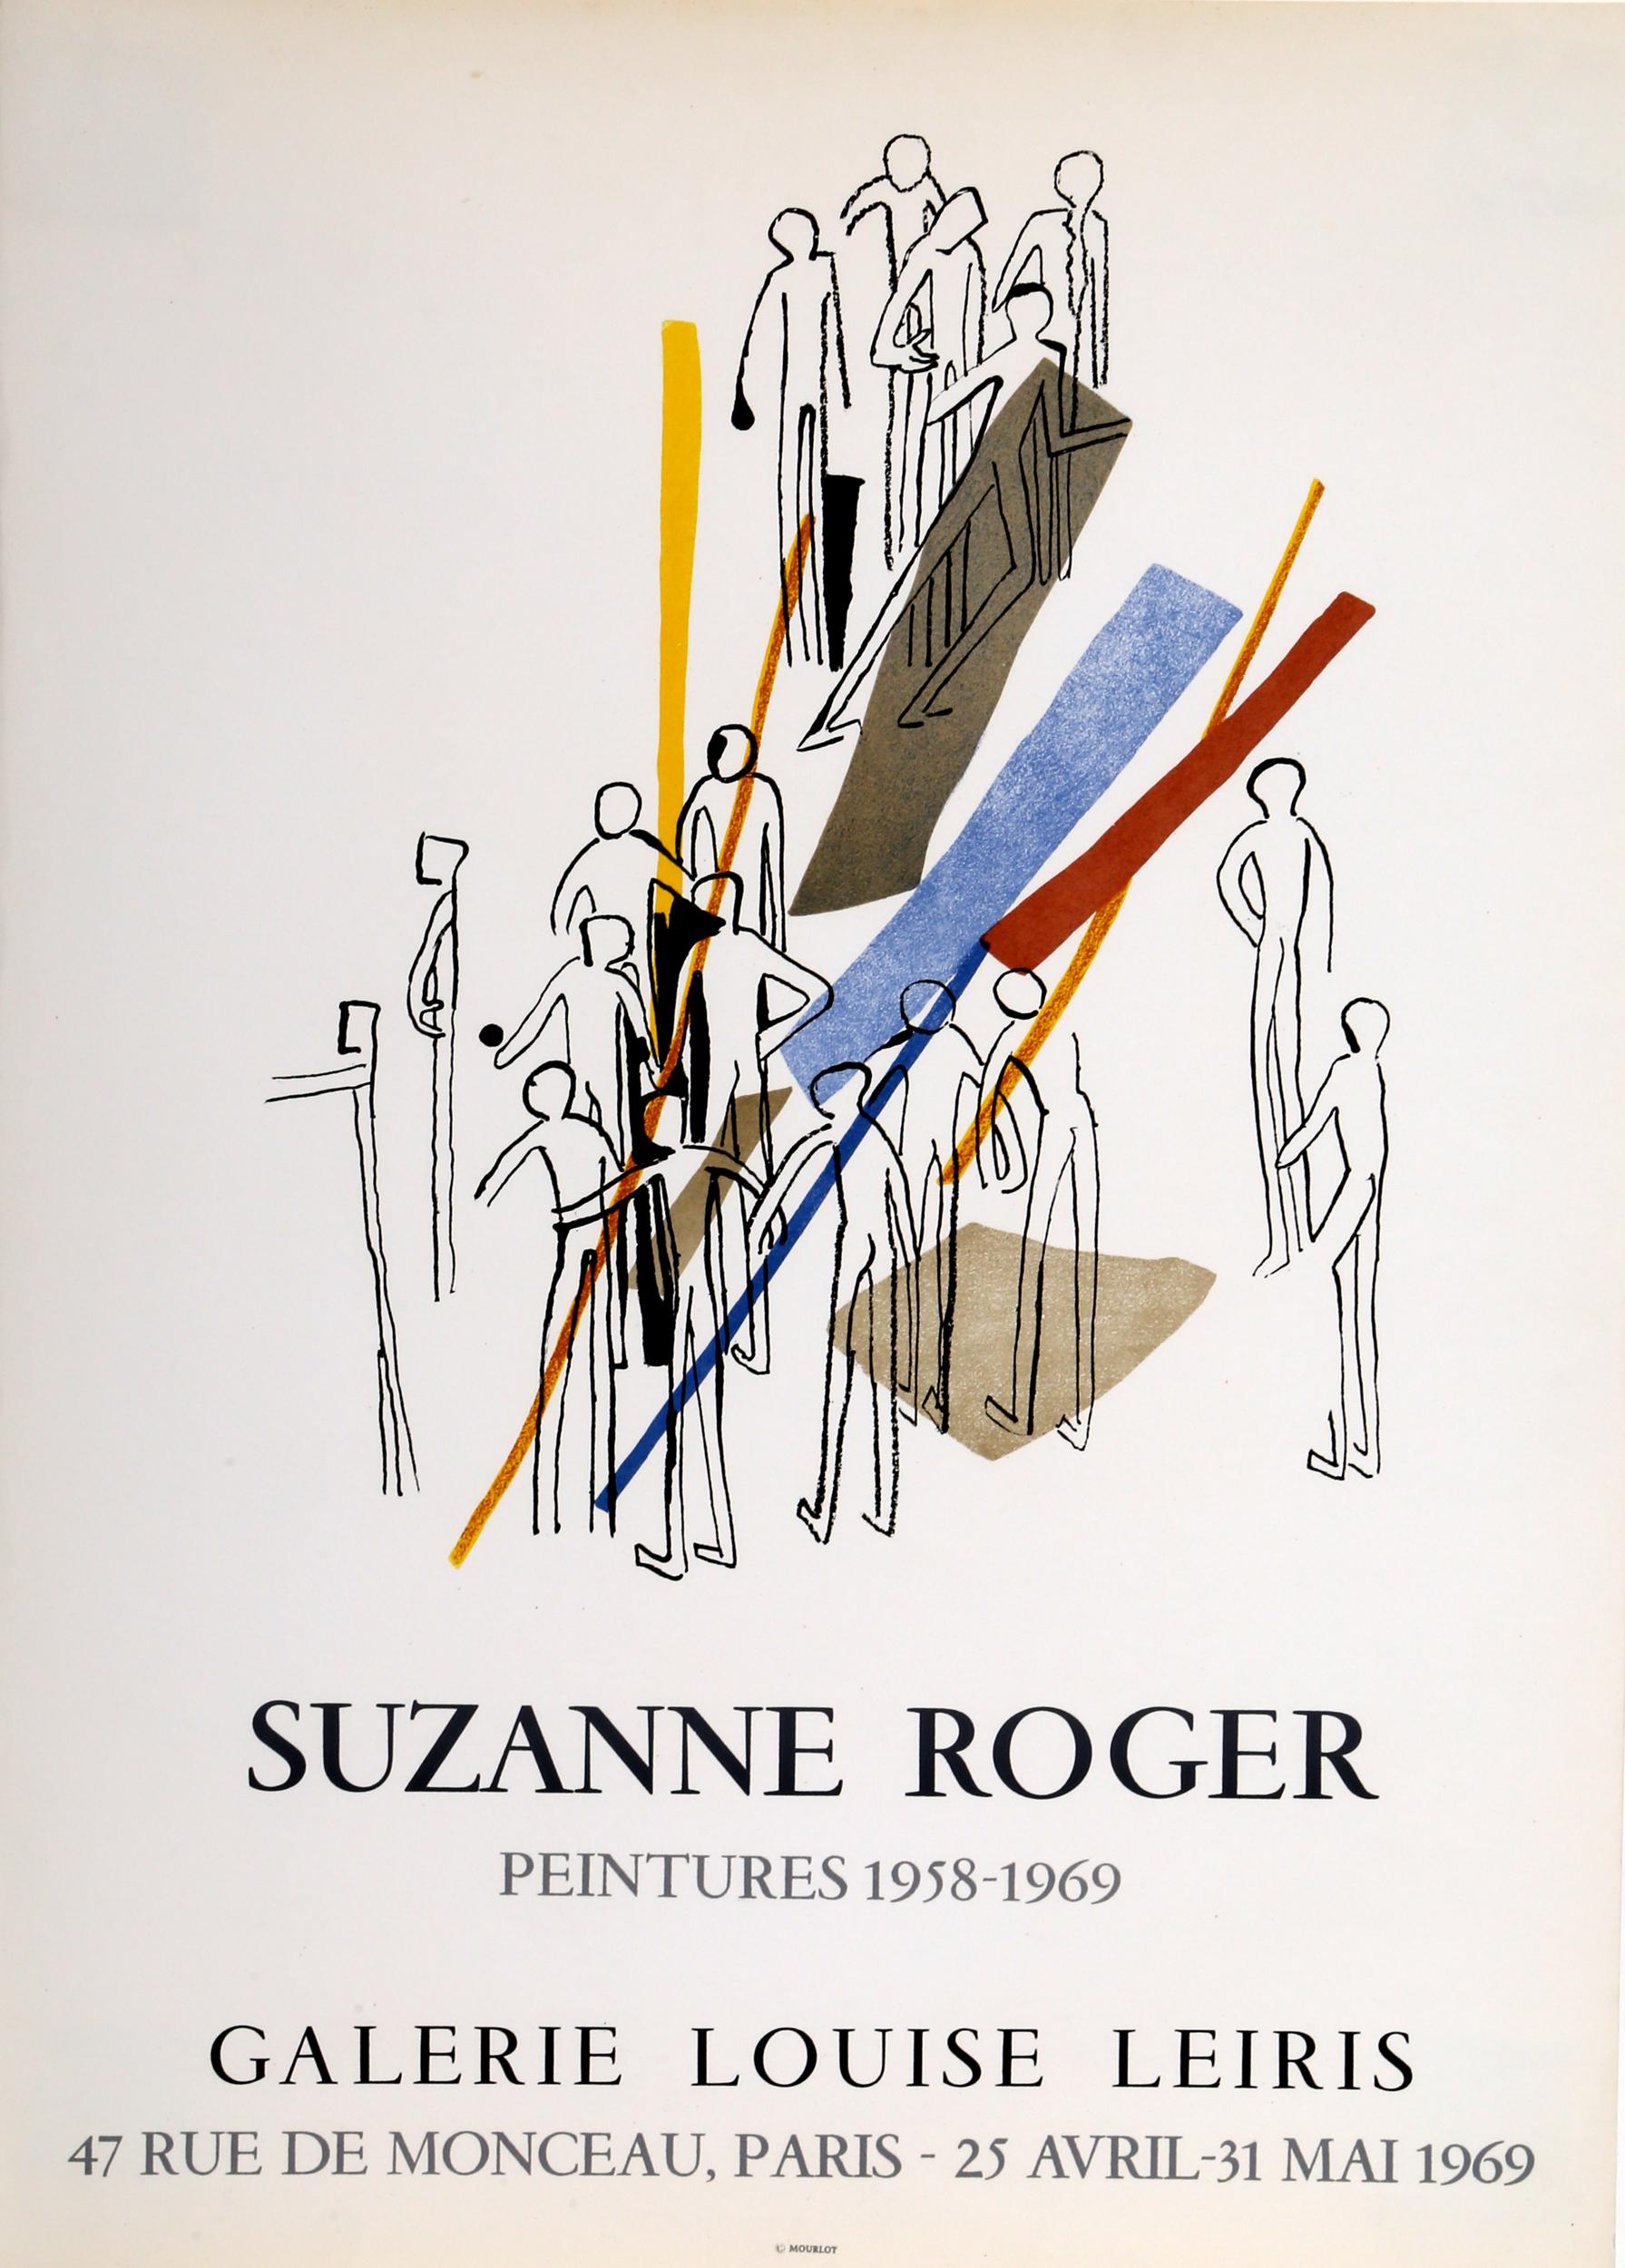 Suzanne Roger, Galerie Louise Leiris, Lithograph Poster